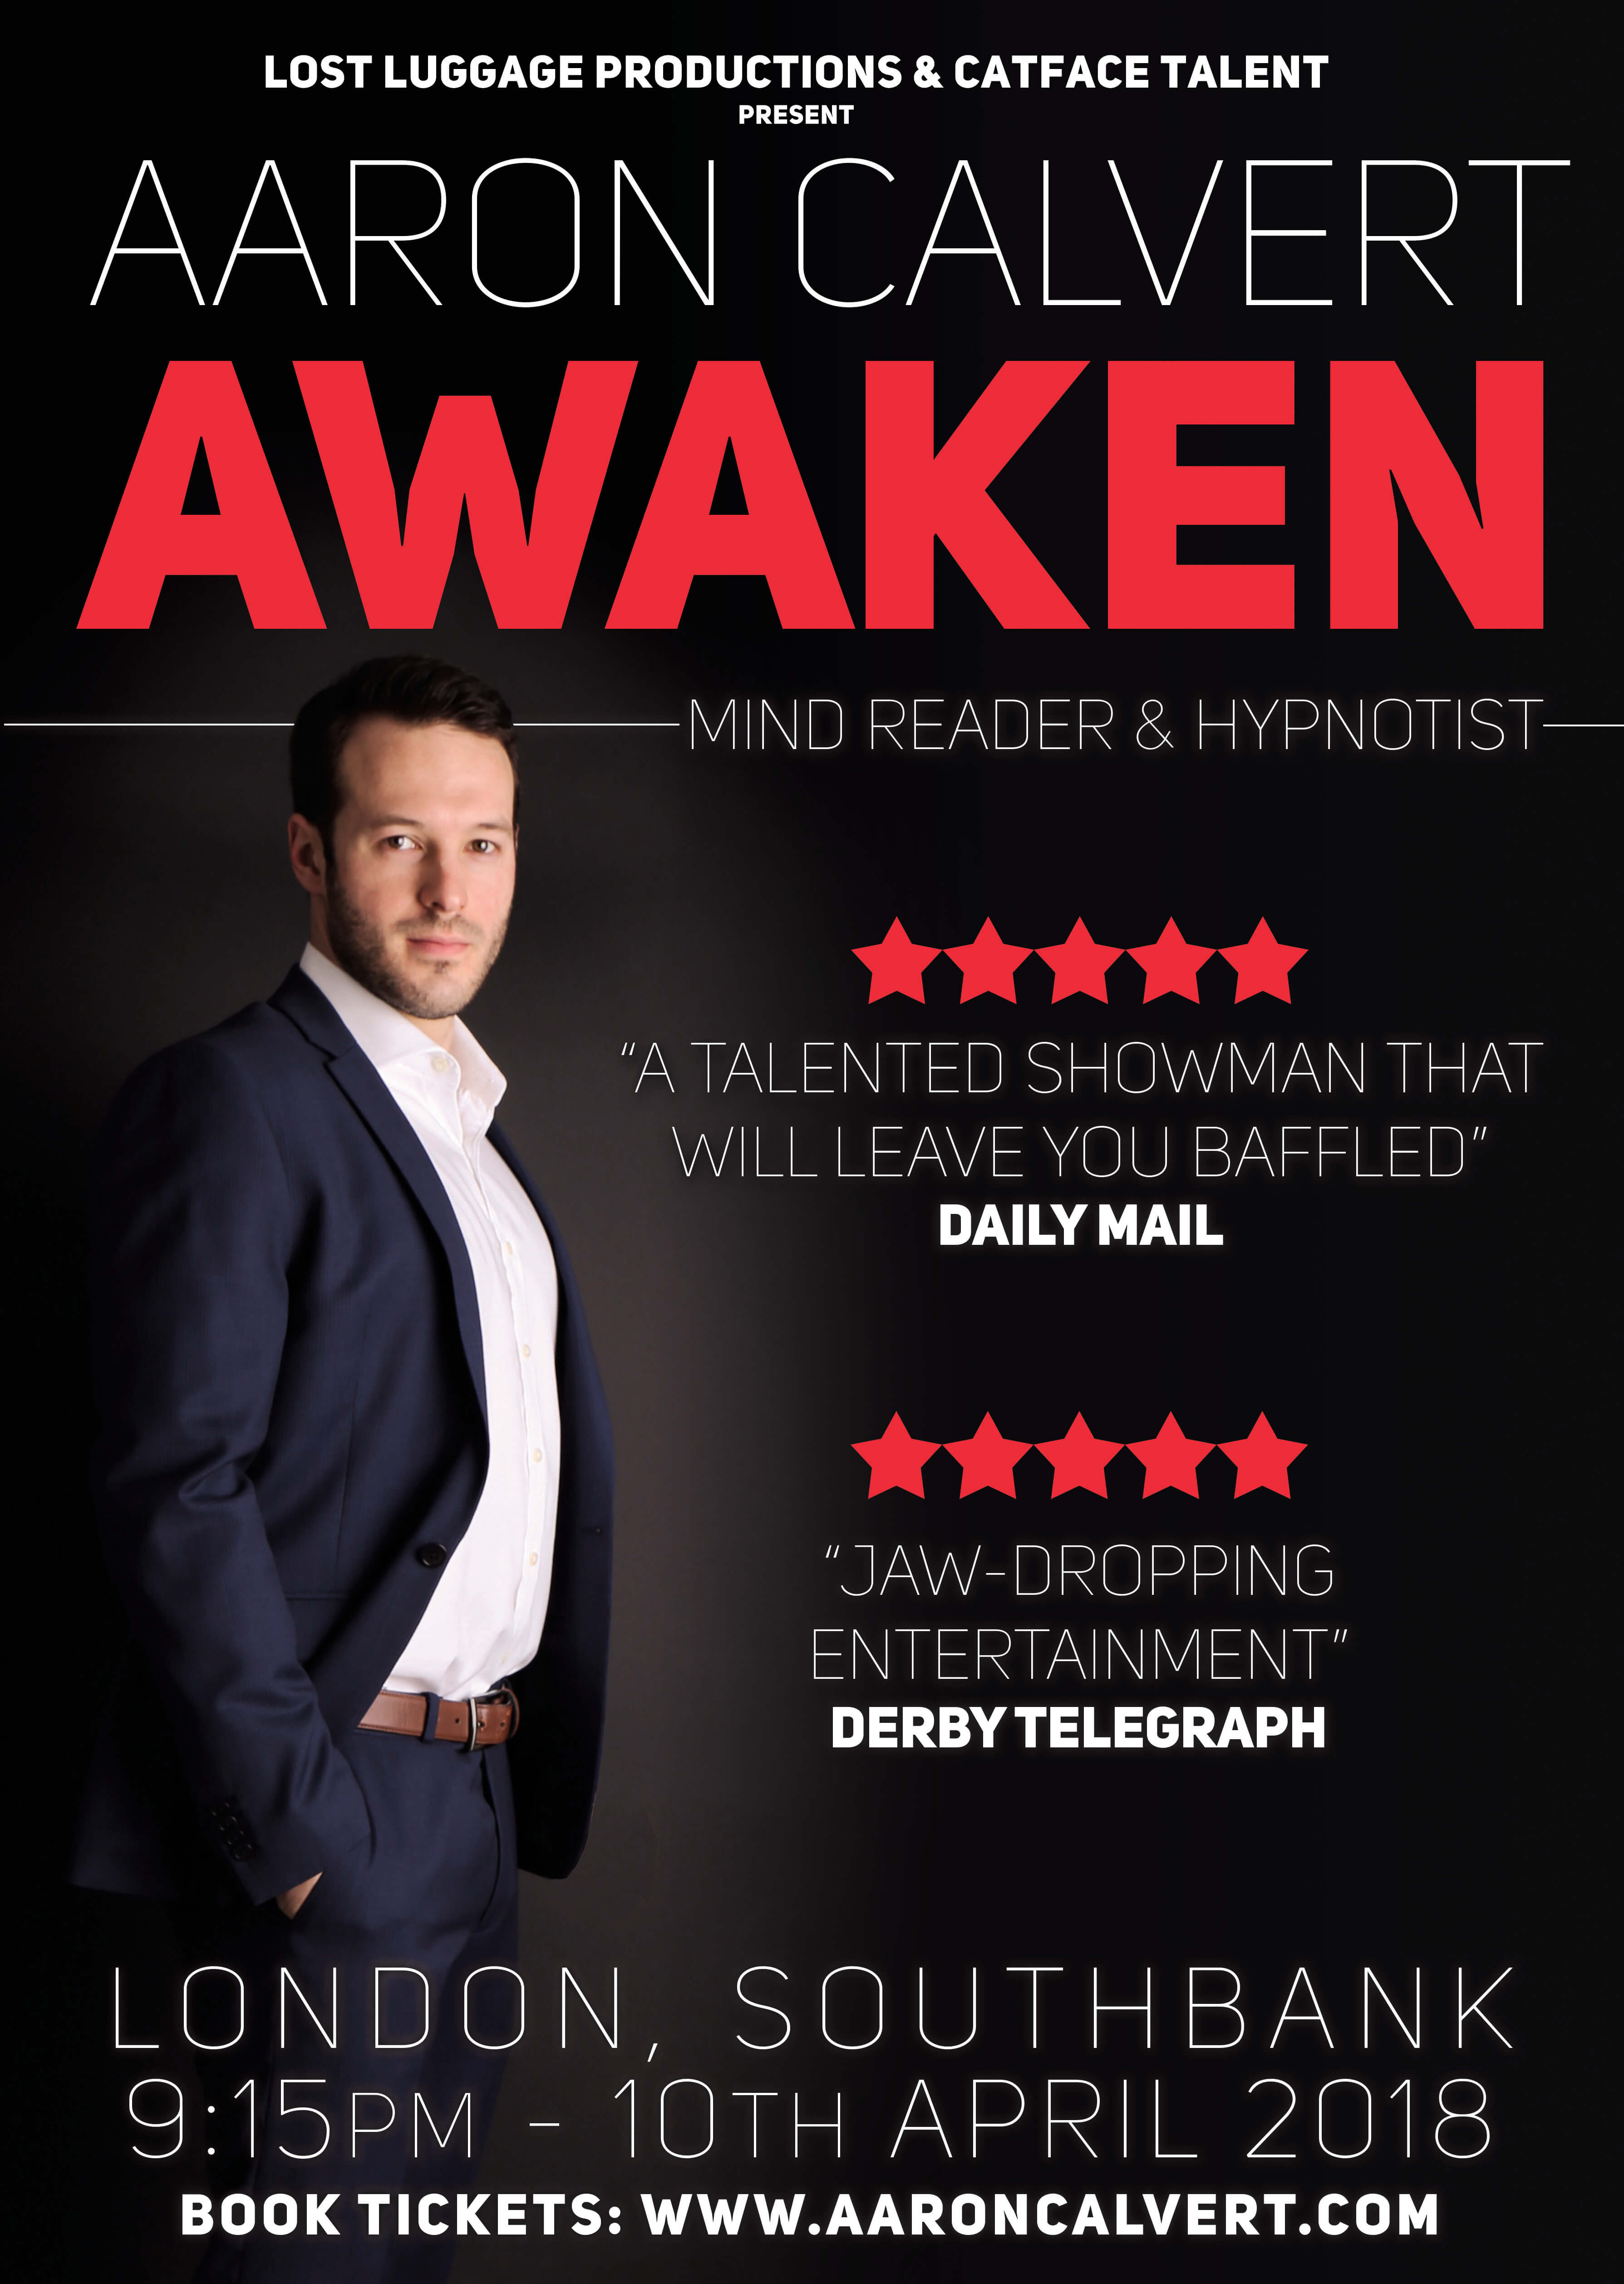 Aaron Calvert Awaken London Magic Show Underbelly Southbank